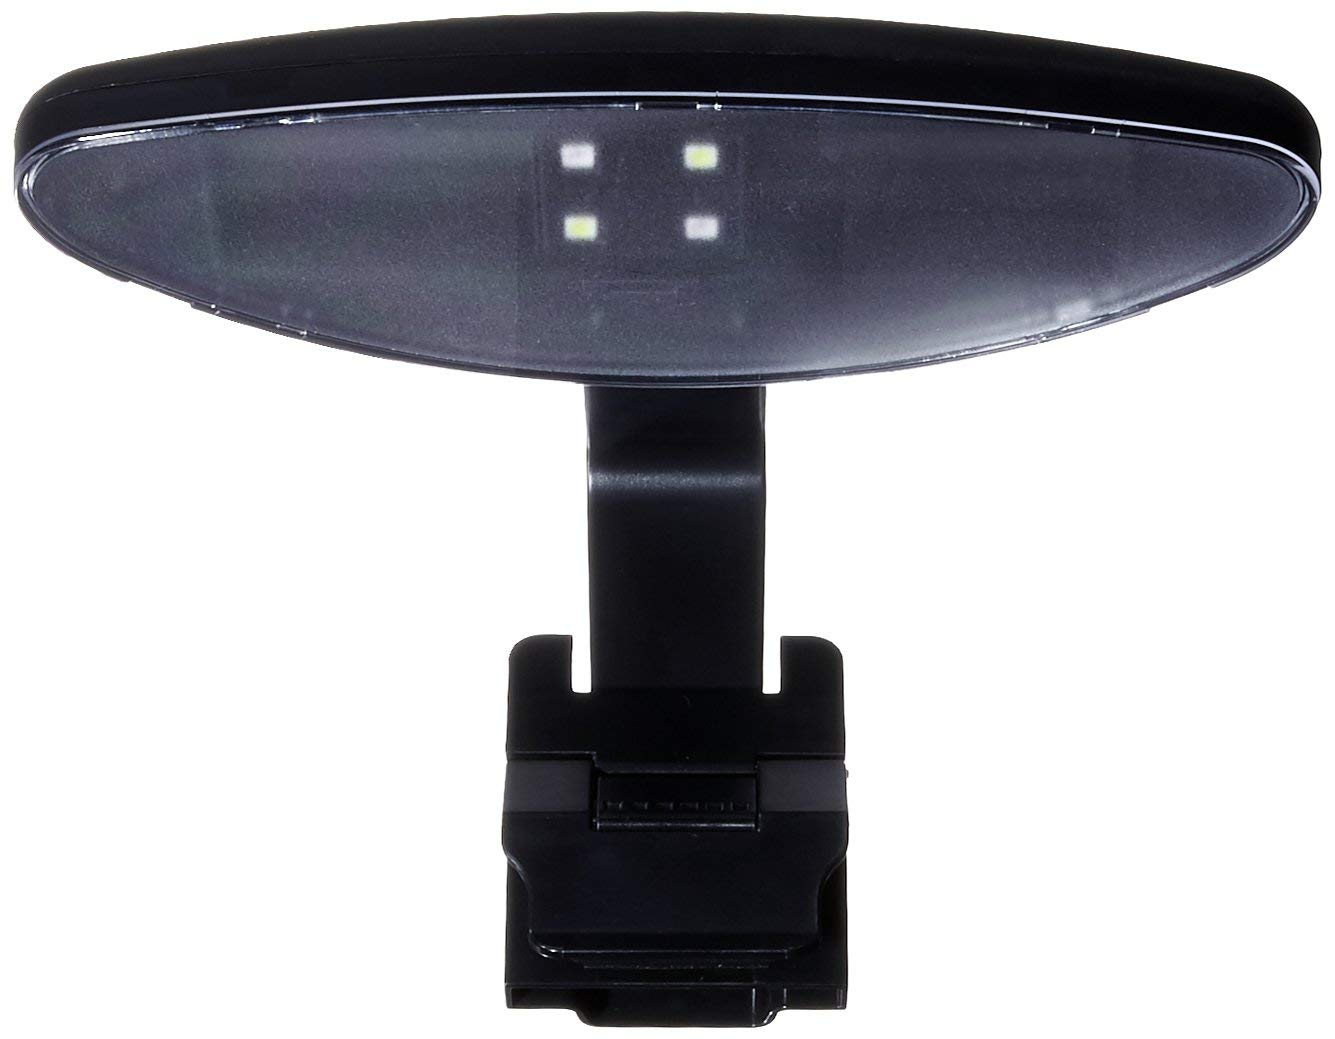 Elive Track Light LED Aquarium Fish Tank Mount, Holds up to 4 LED Pods, Long Lifetime, For Up to 10 Gallon Tanks, Includes One Pod